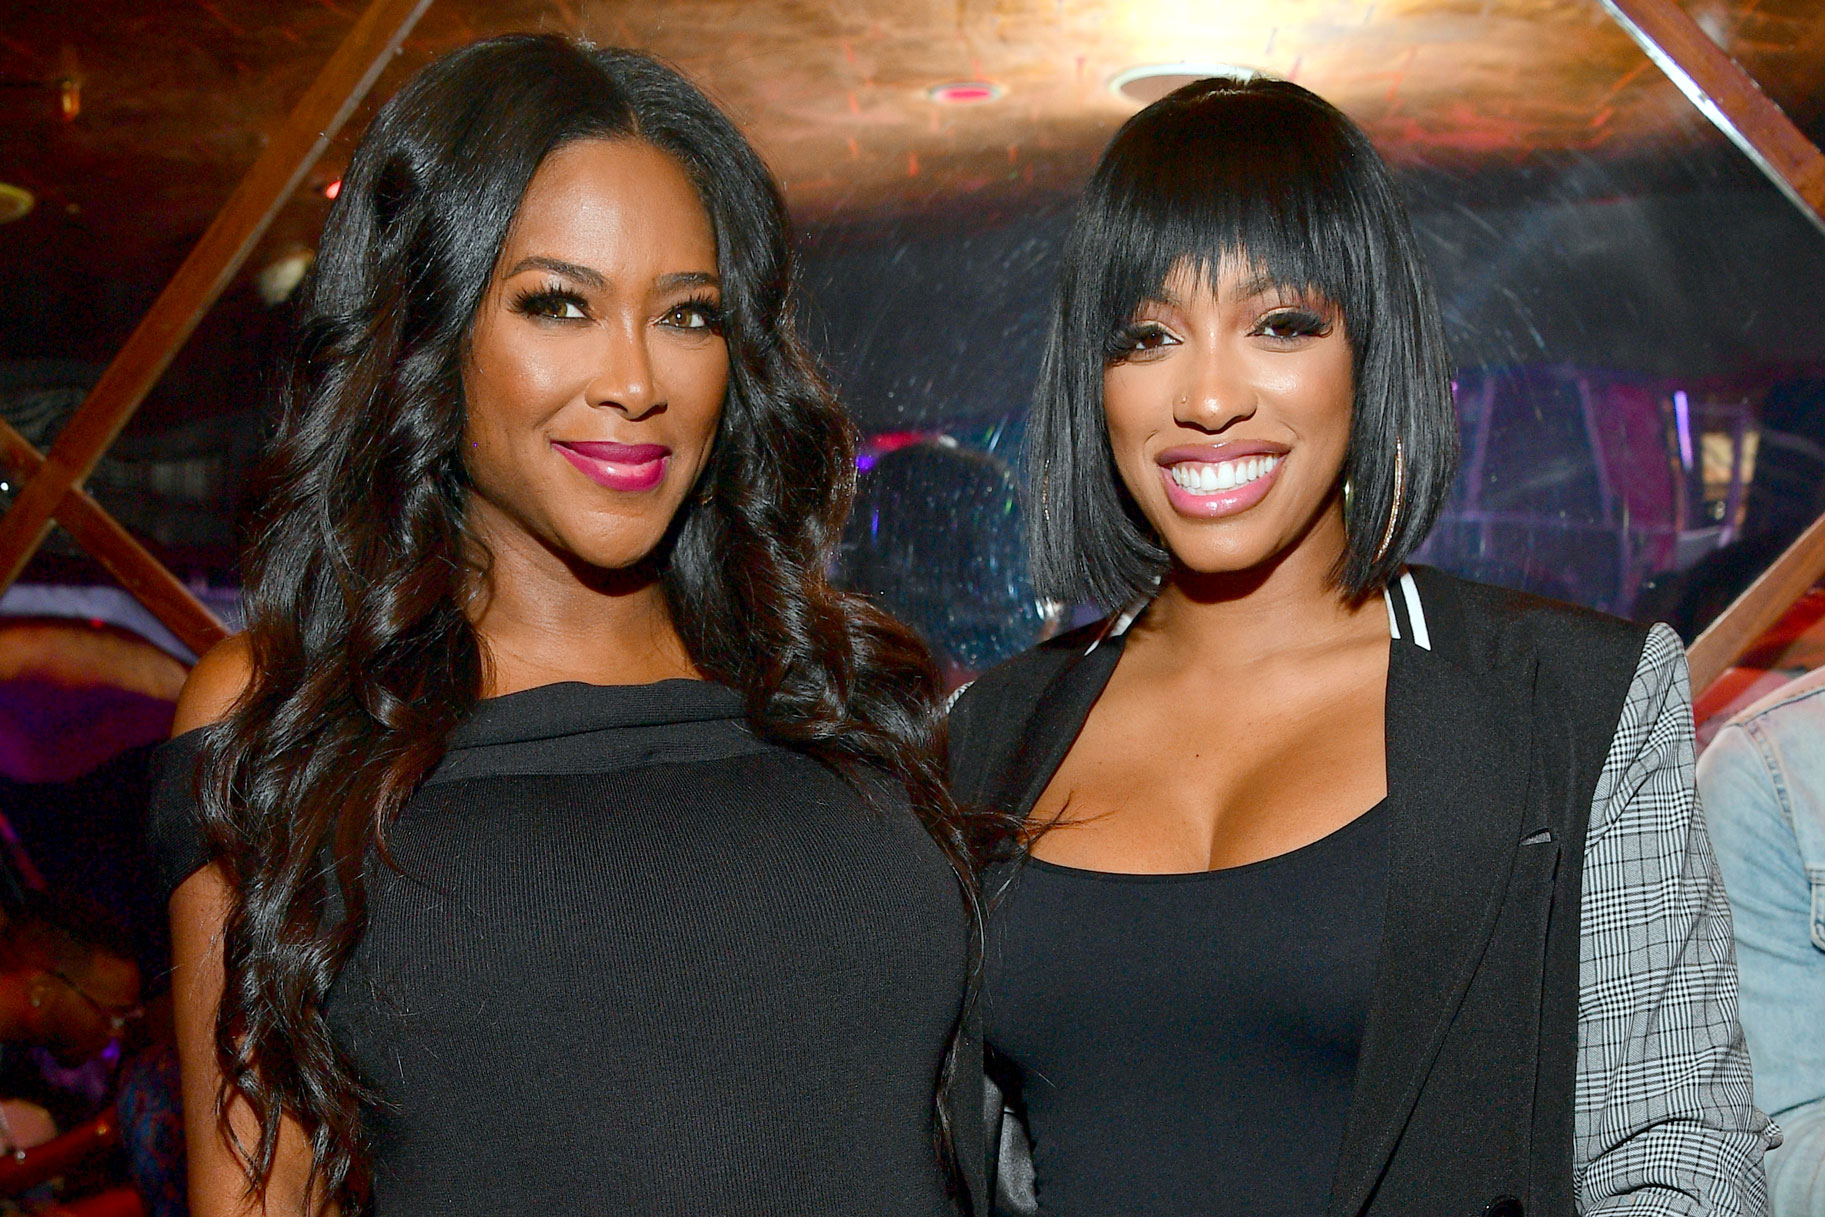 Kenya Moore and Porsha Williams together